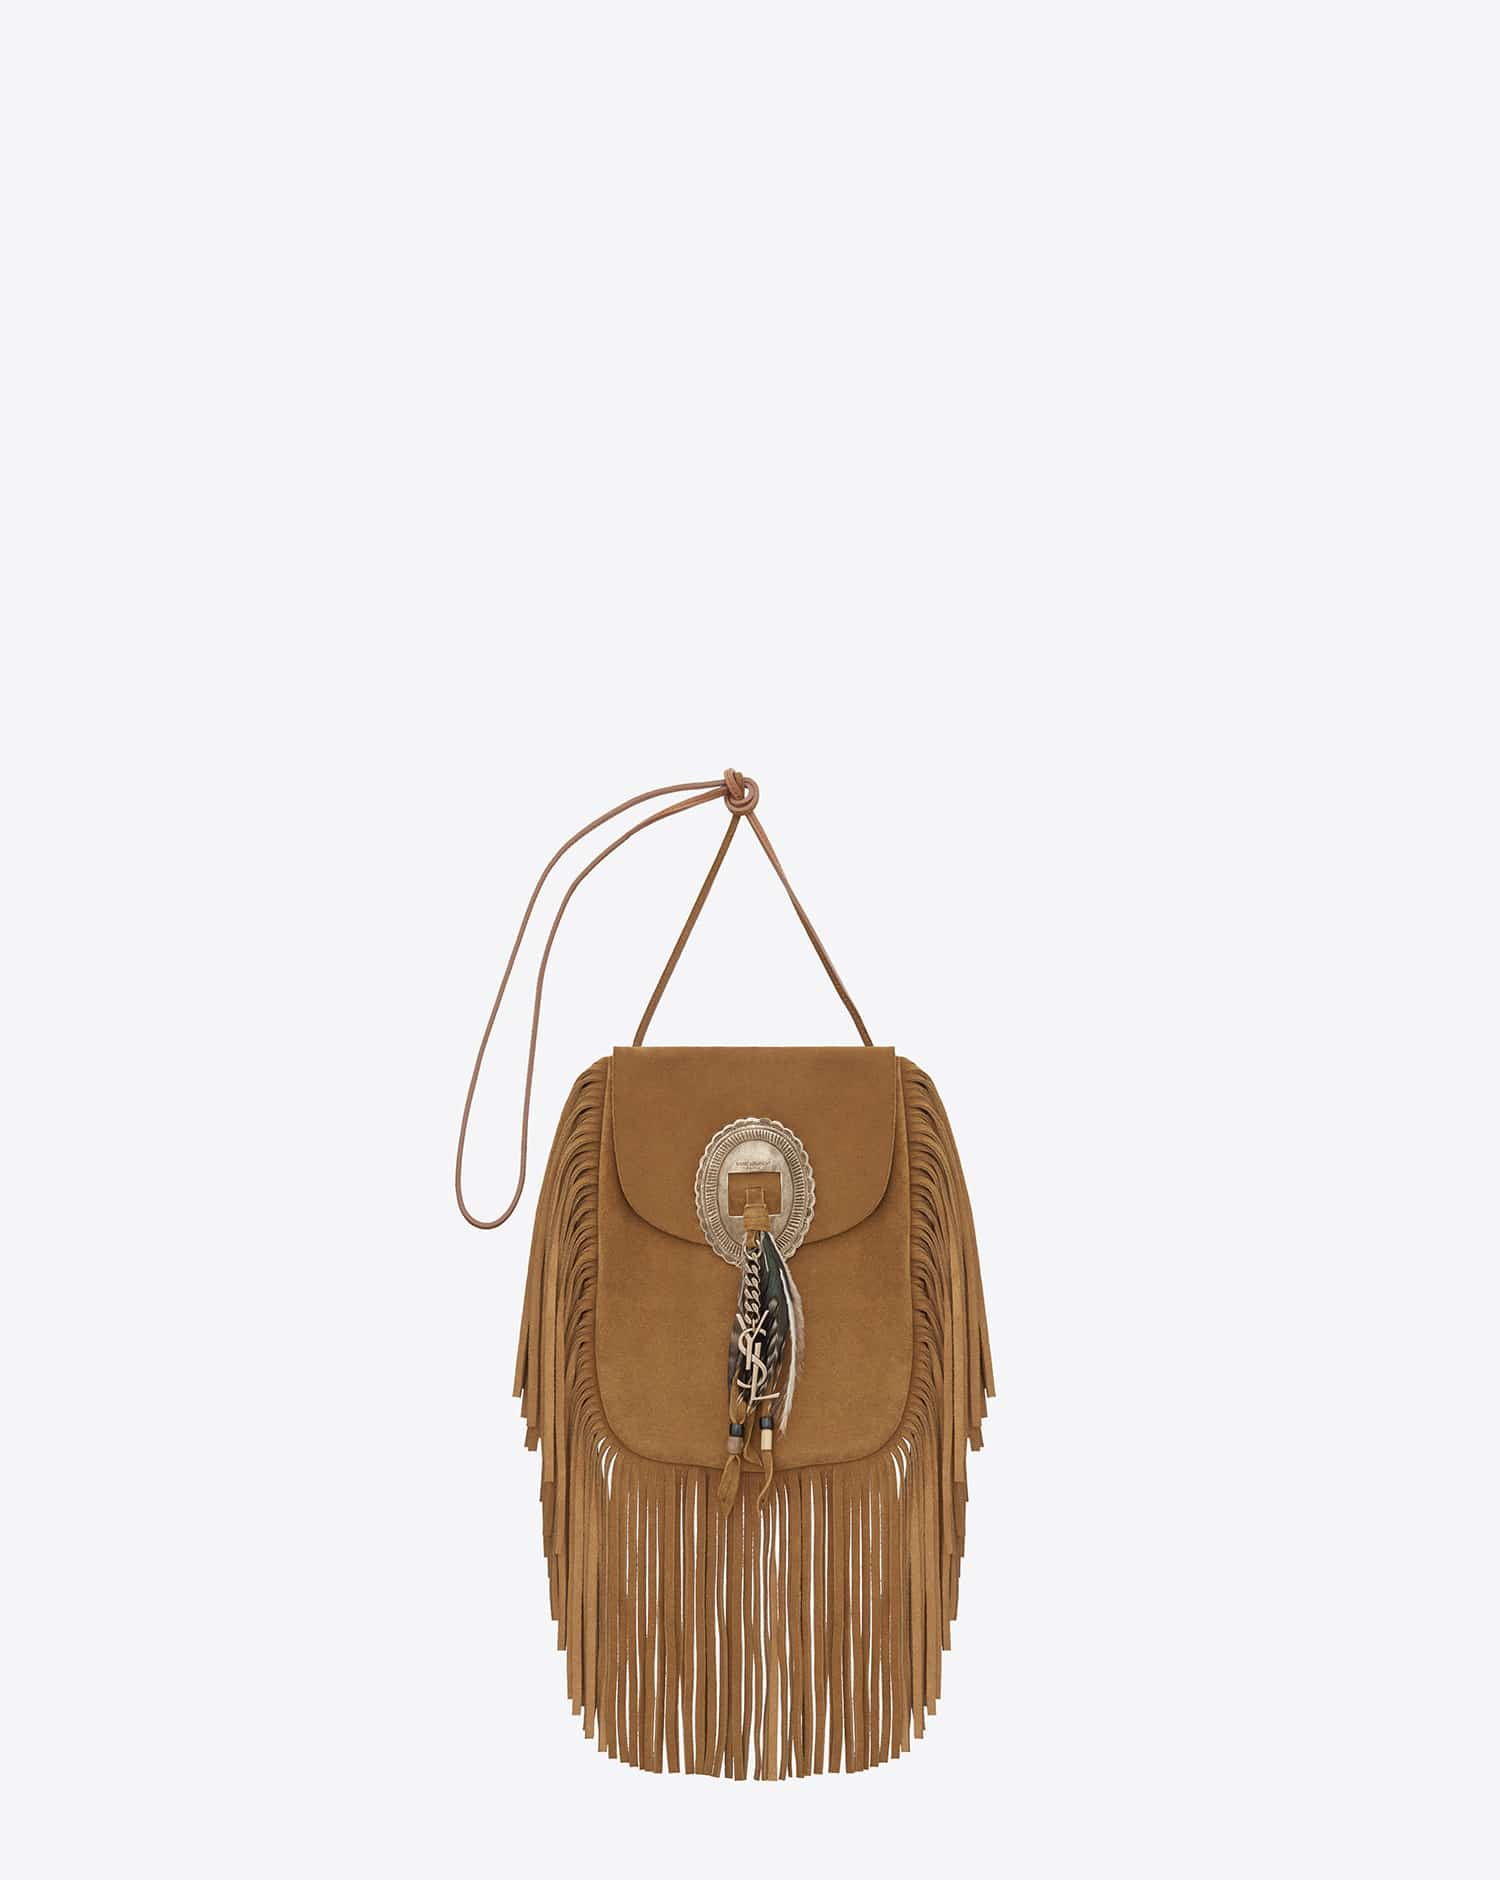 Saint Laurent Ocher Anita Fringed Flat Bag - Cruise 2015 69bb1bcdb2c13